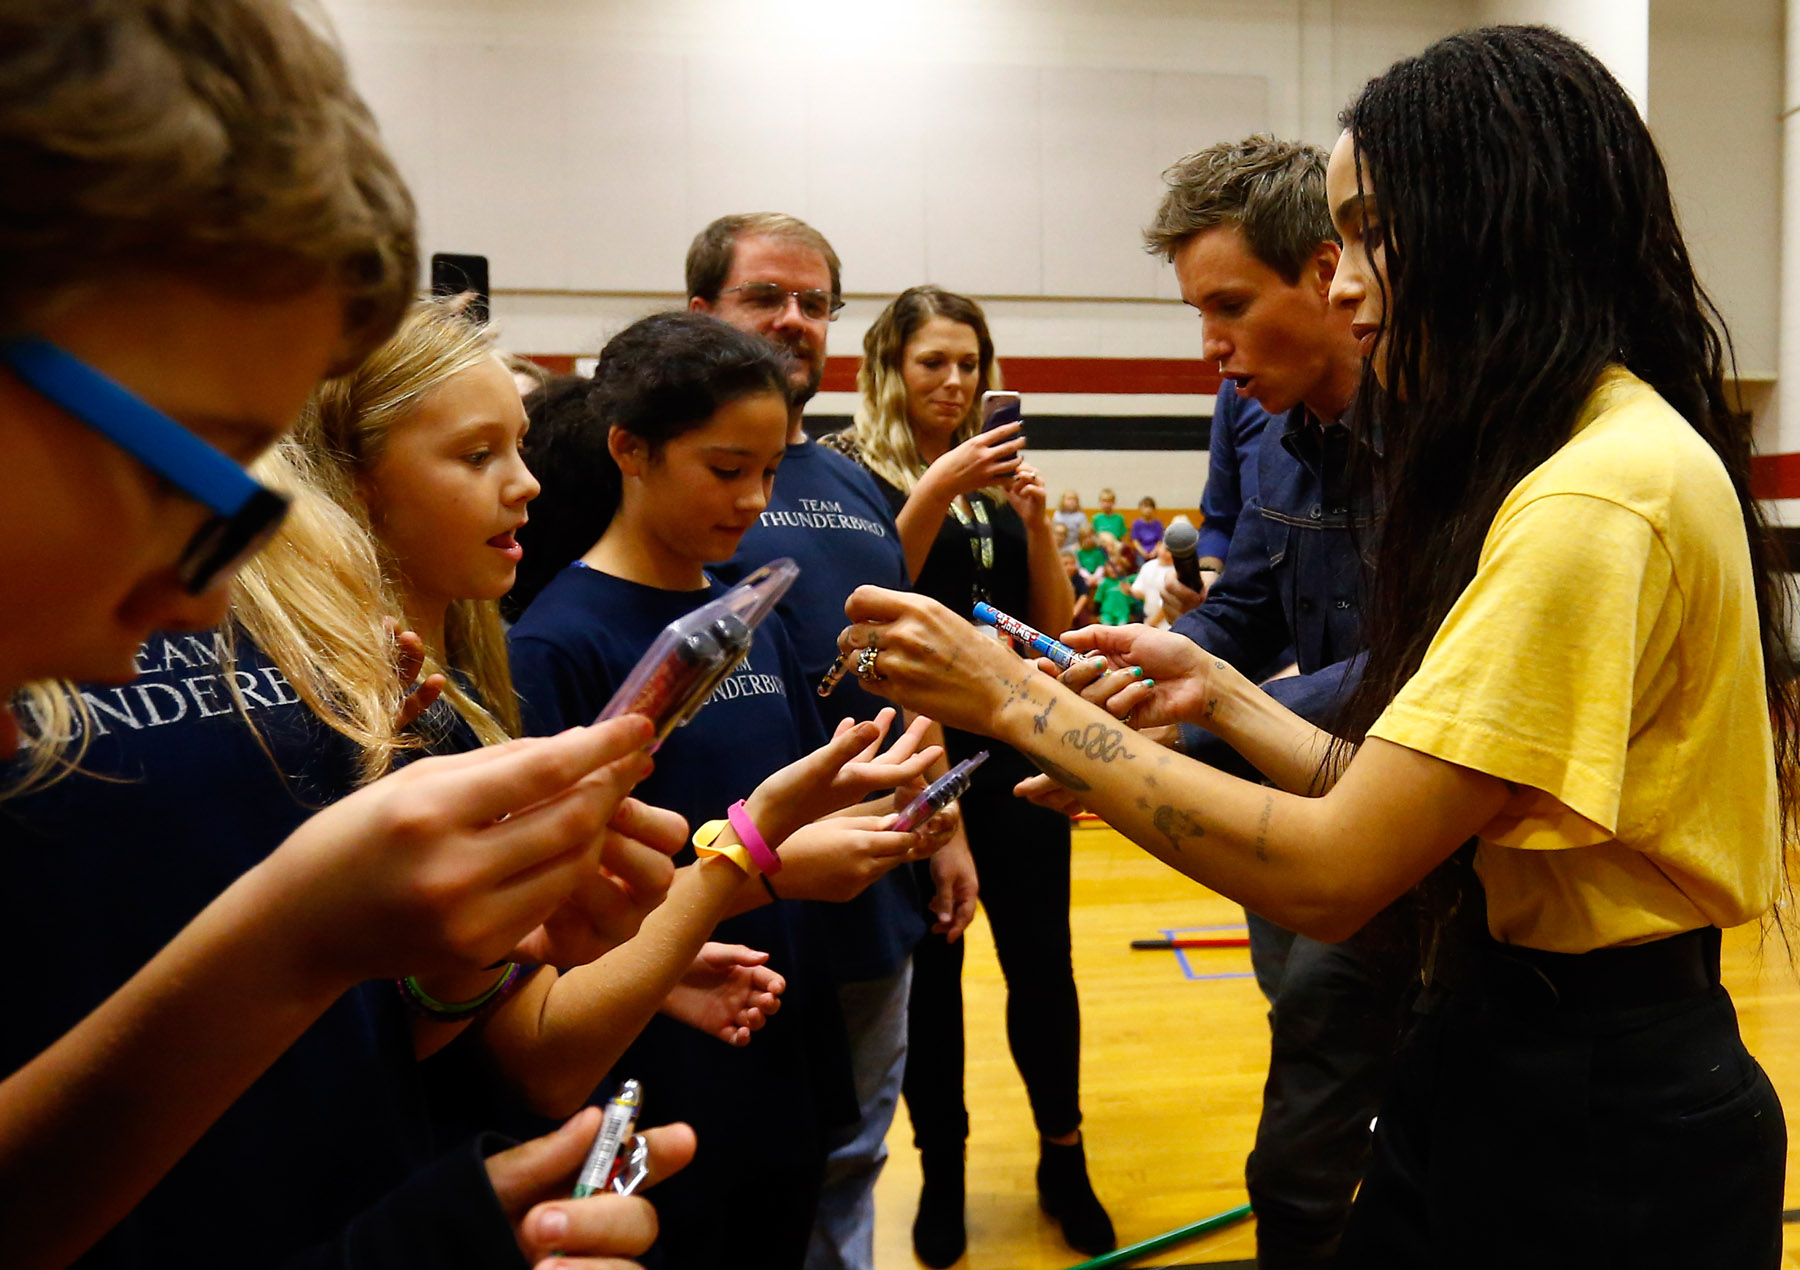 """Eddie Redmayne and Zoë Kravitz from """"Fantastic Beasts: The Crimes of Grindelwald"""" hand out prizes to students to help celebrate Wizarding World Day at Parkside Middle School in Baileyton, AL.  (Photo by Butch Dill/Getty Images)"""